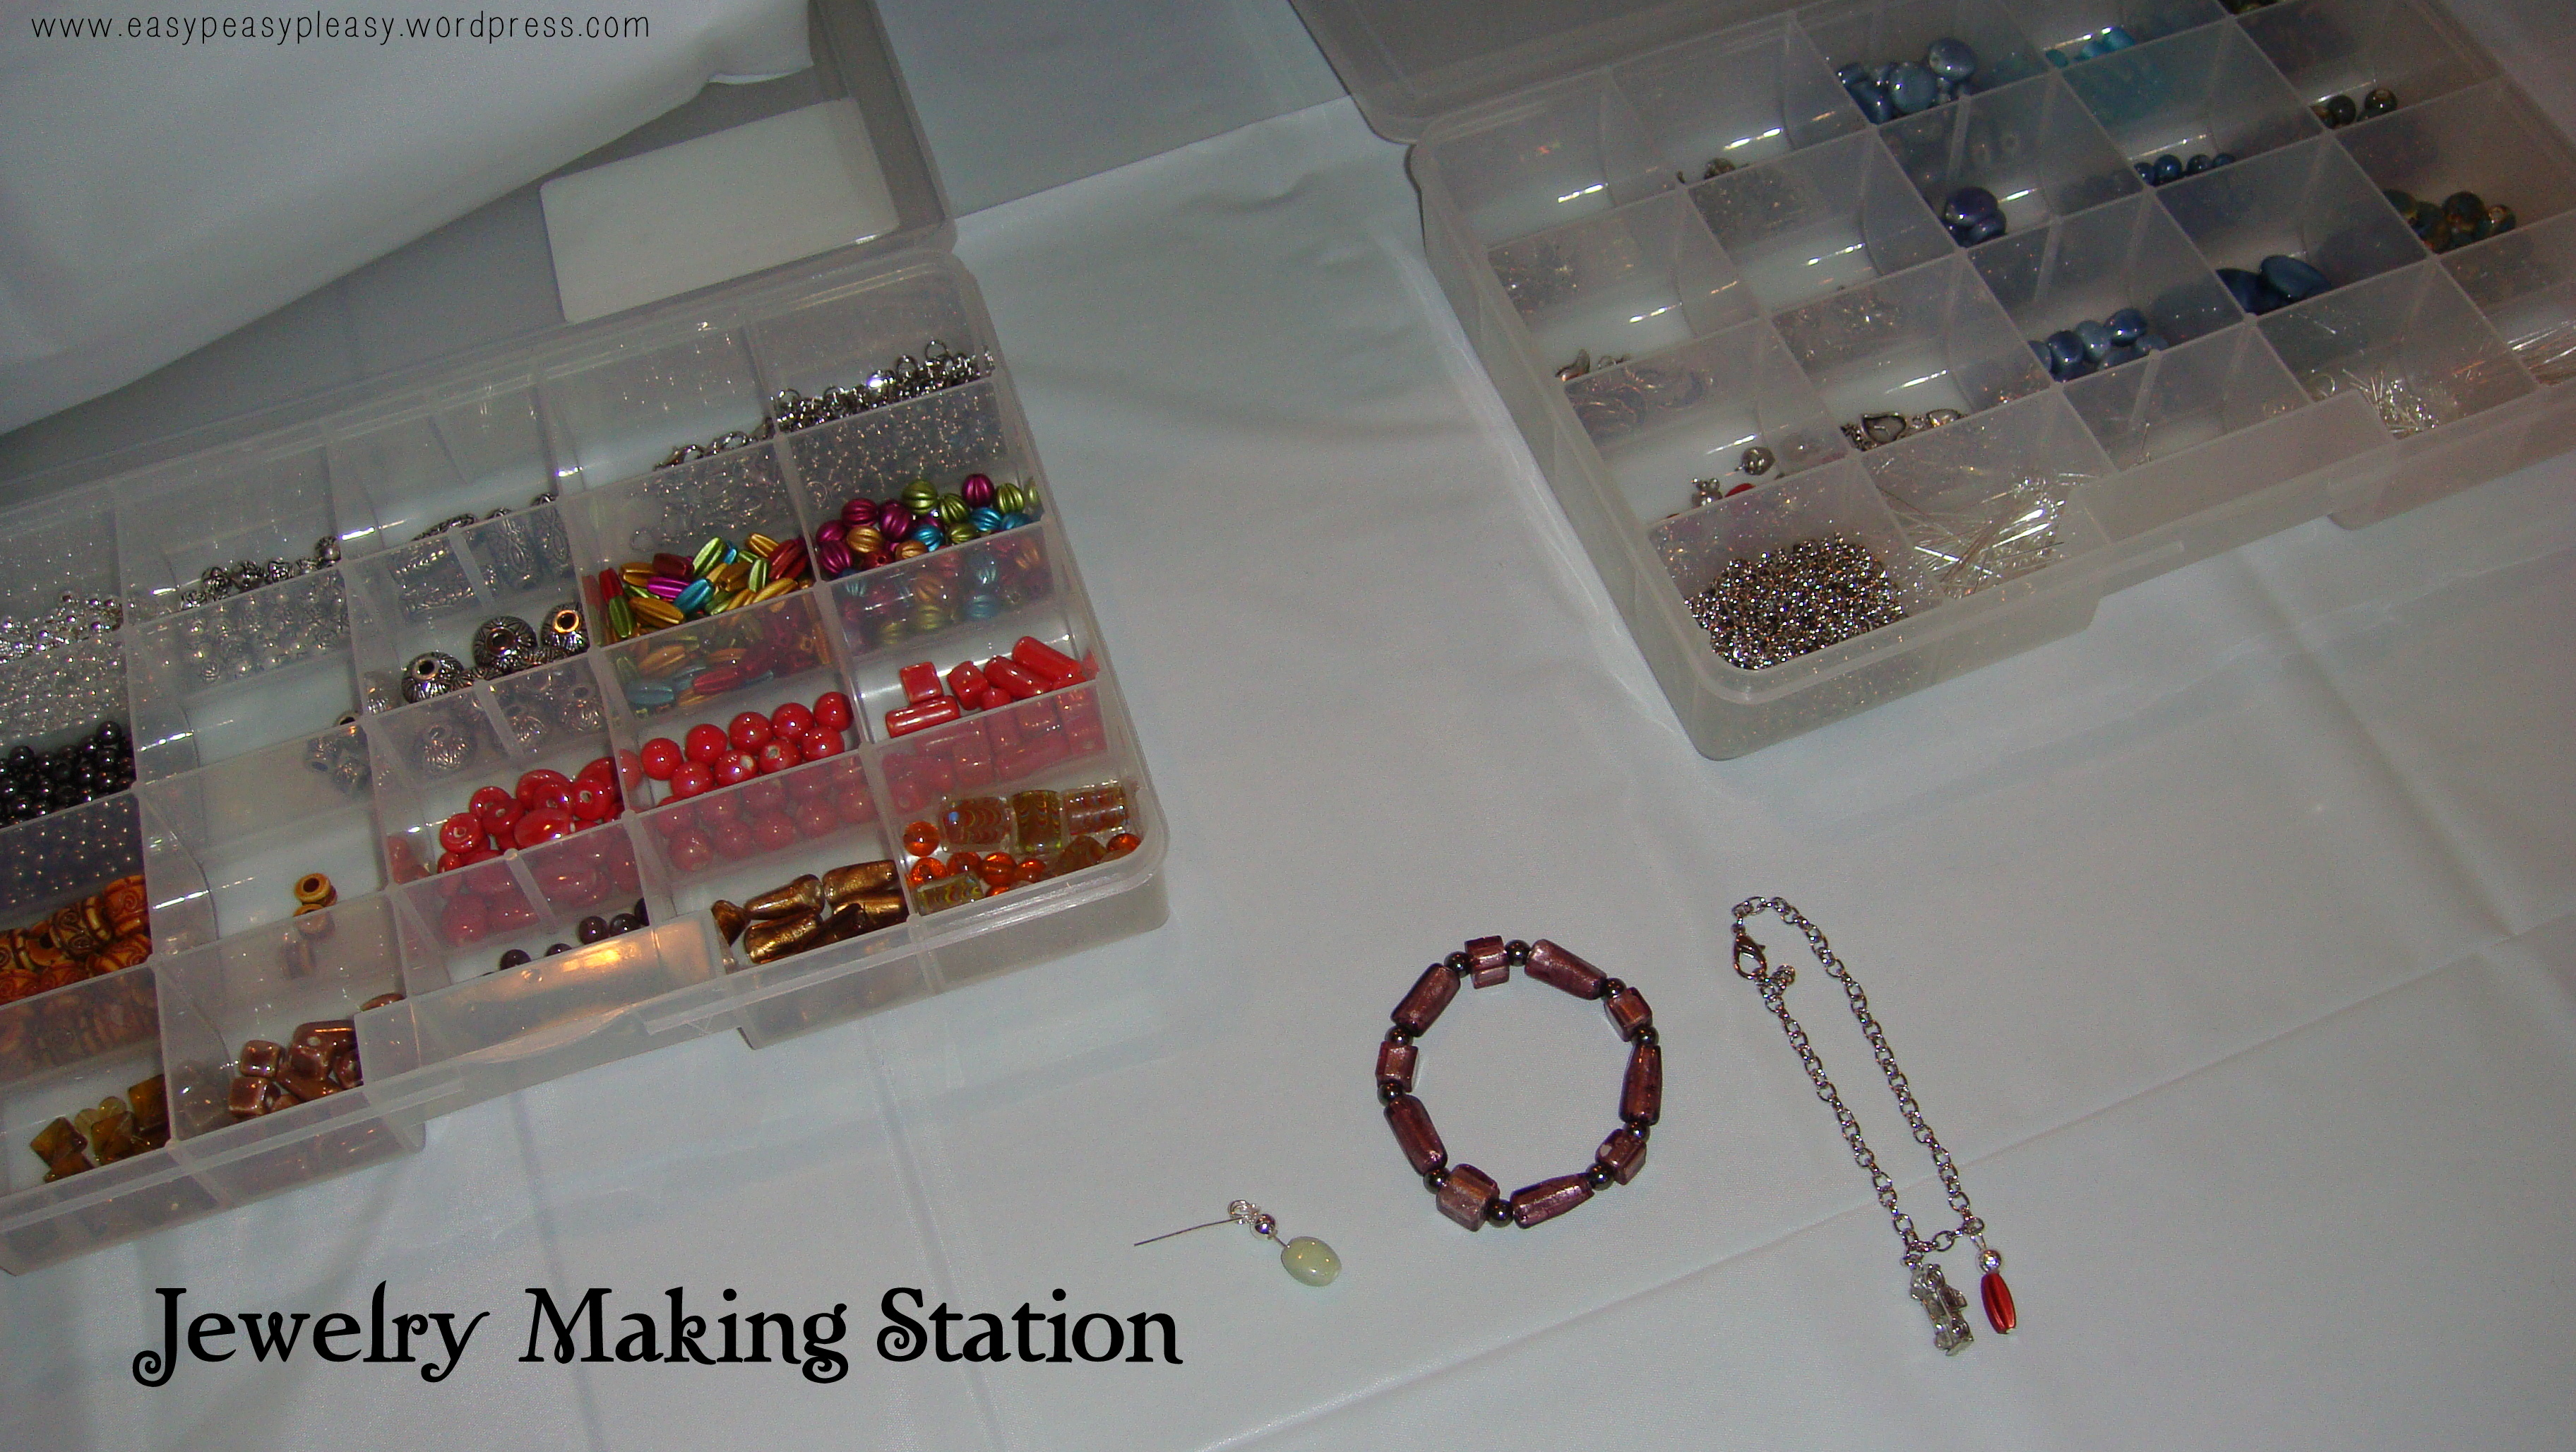 Twilight New Moon Party Jewelry Making Station